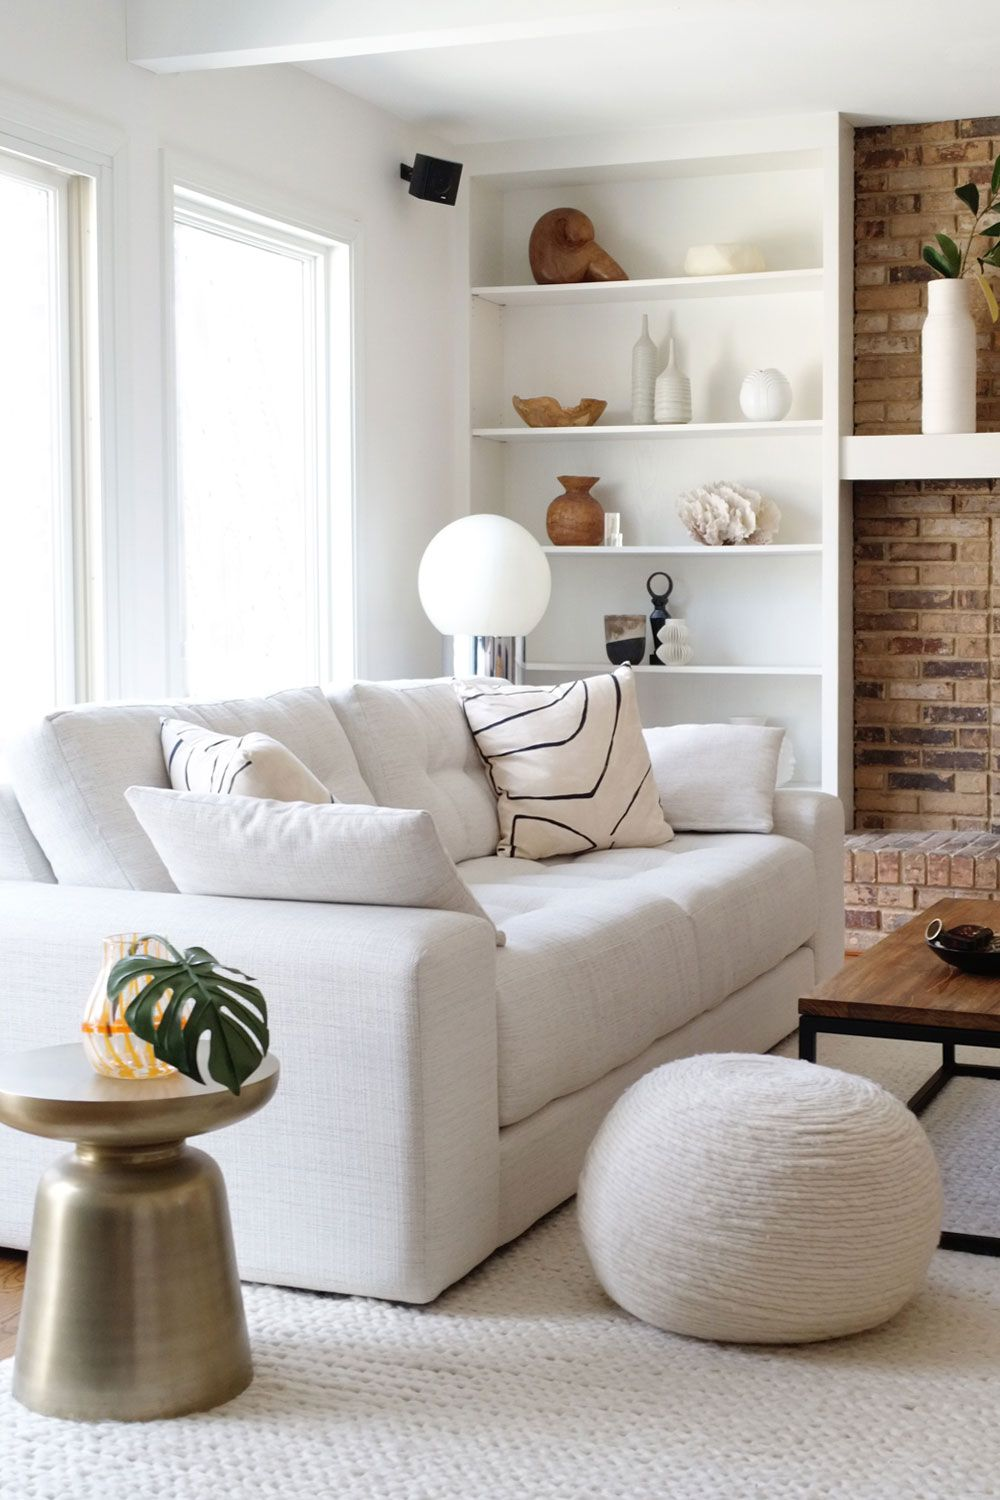 Beautiful Distractions No 19 In 2020 Home Decor Living Room Design Decor White Sofas